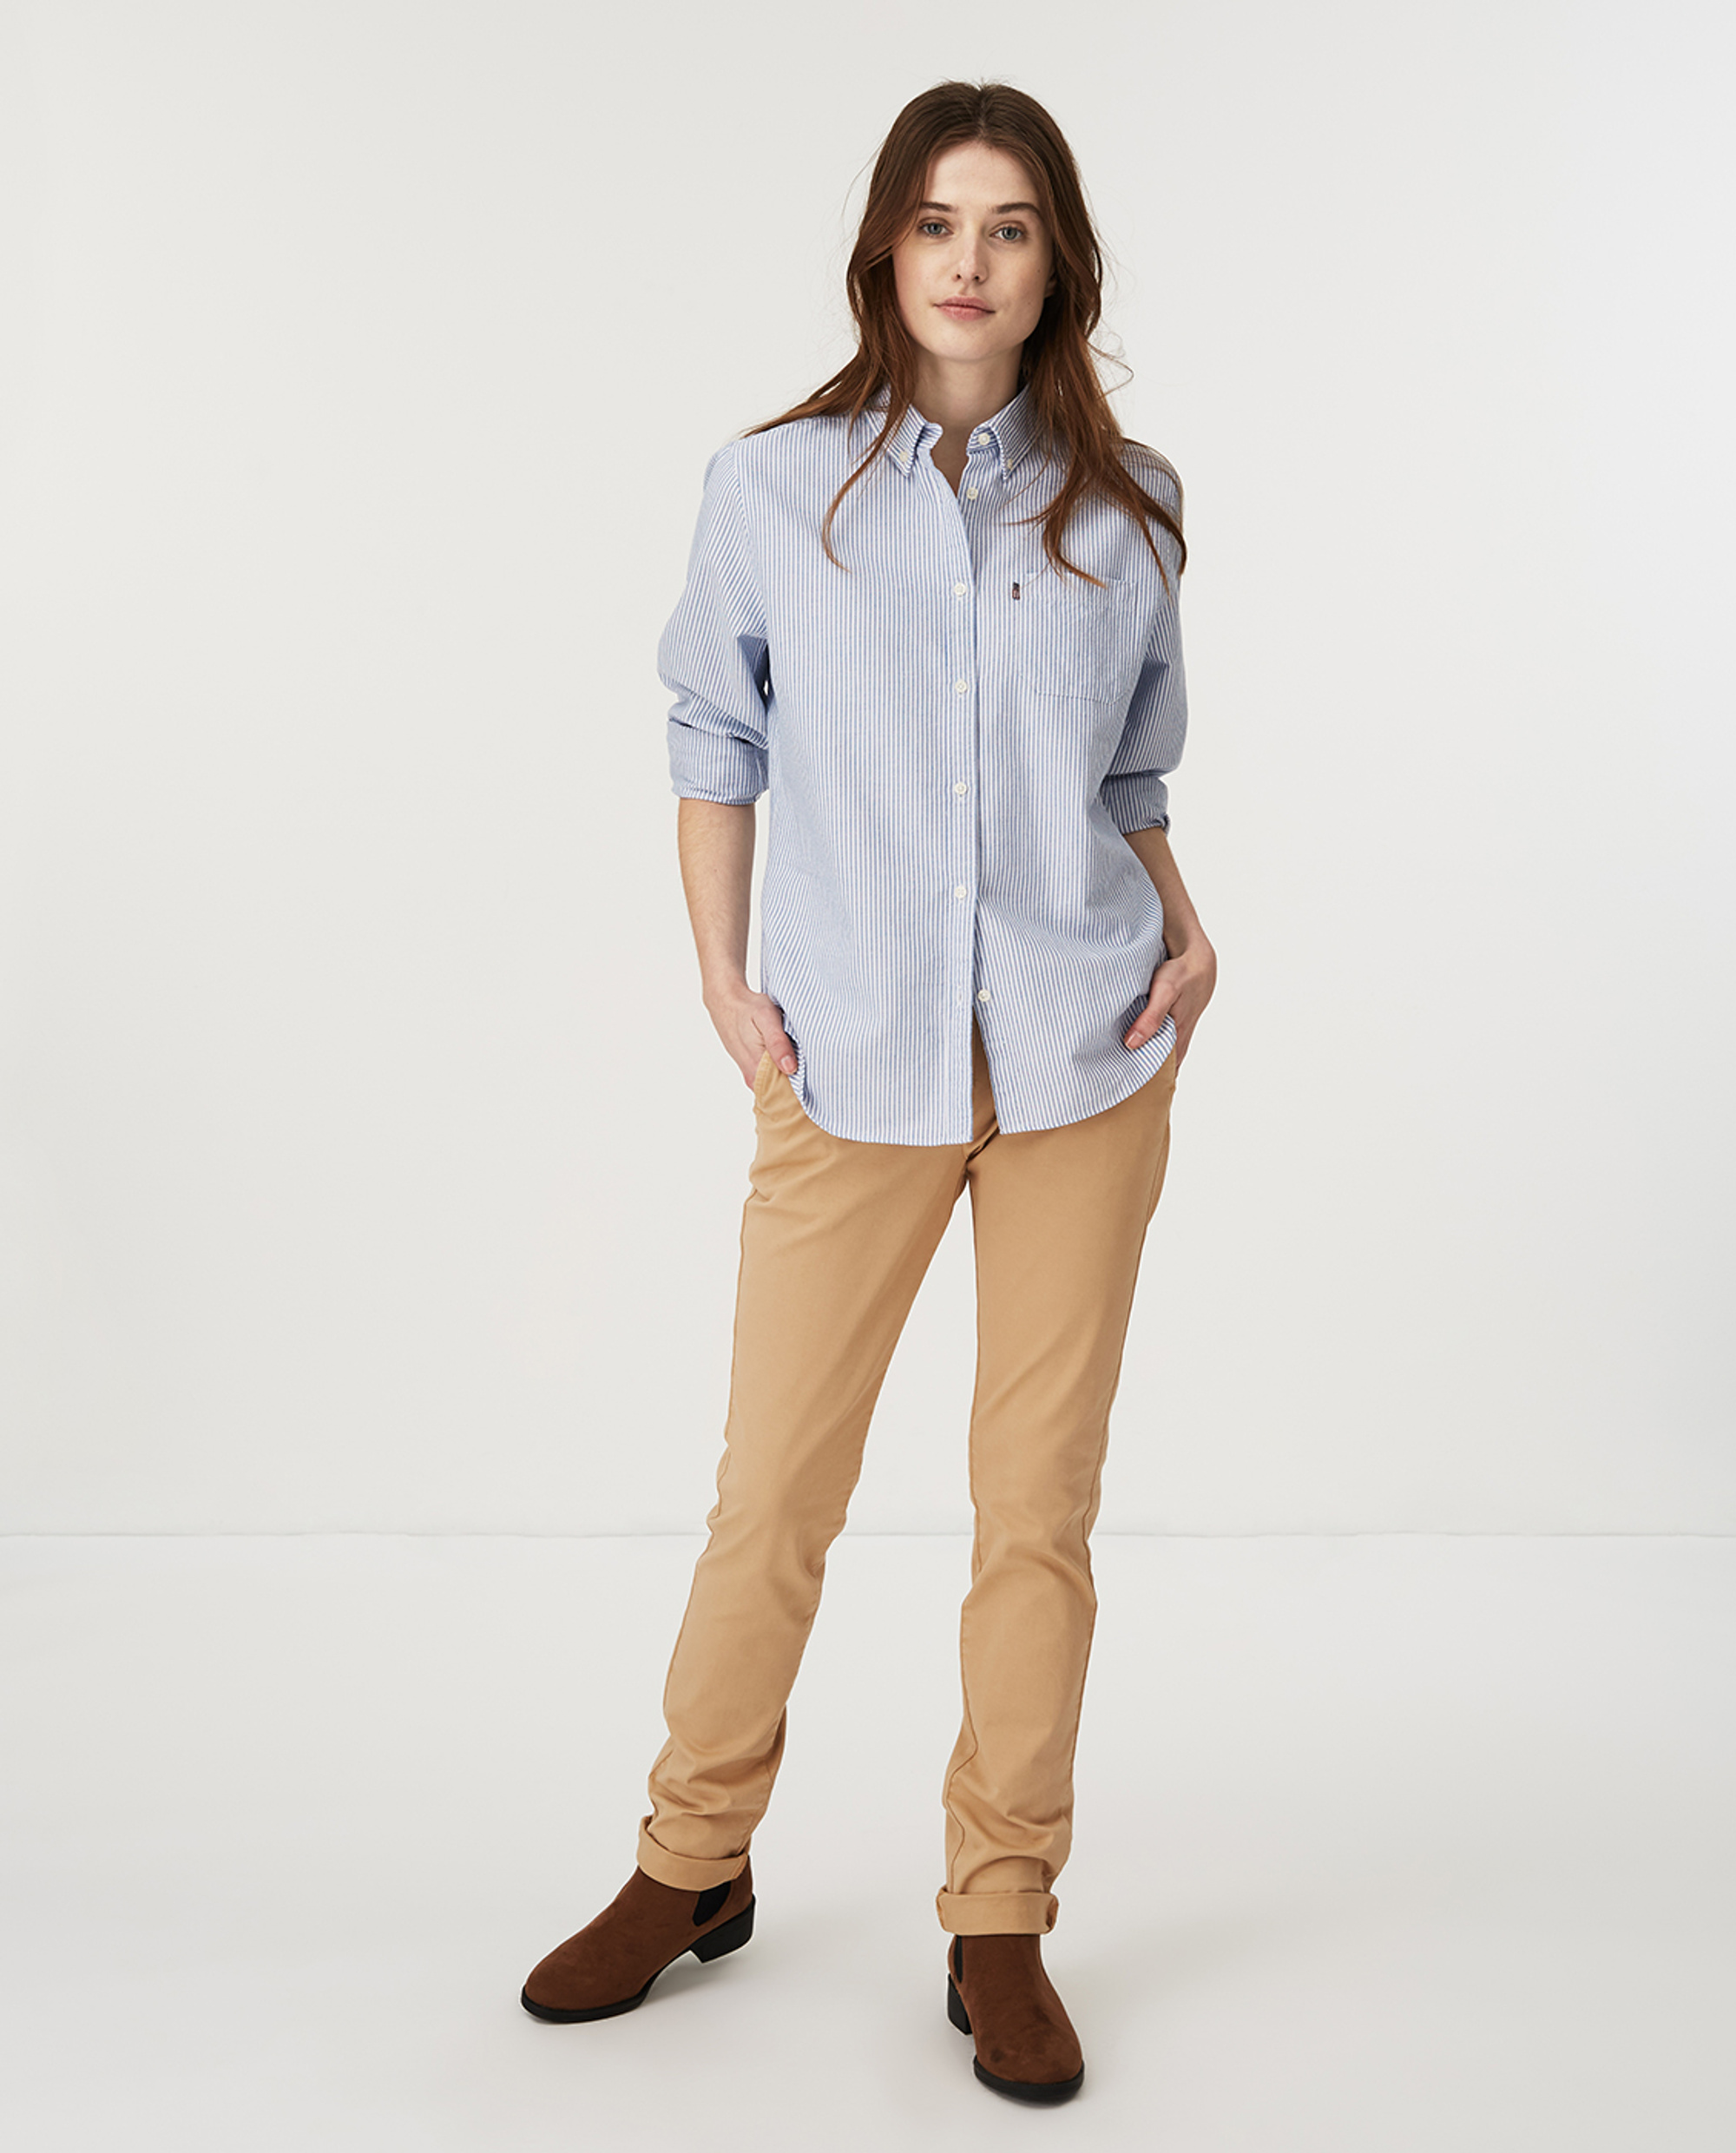 Sarah Organic Cotton Oxford Shirt, Blue/White Stripe